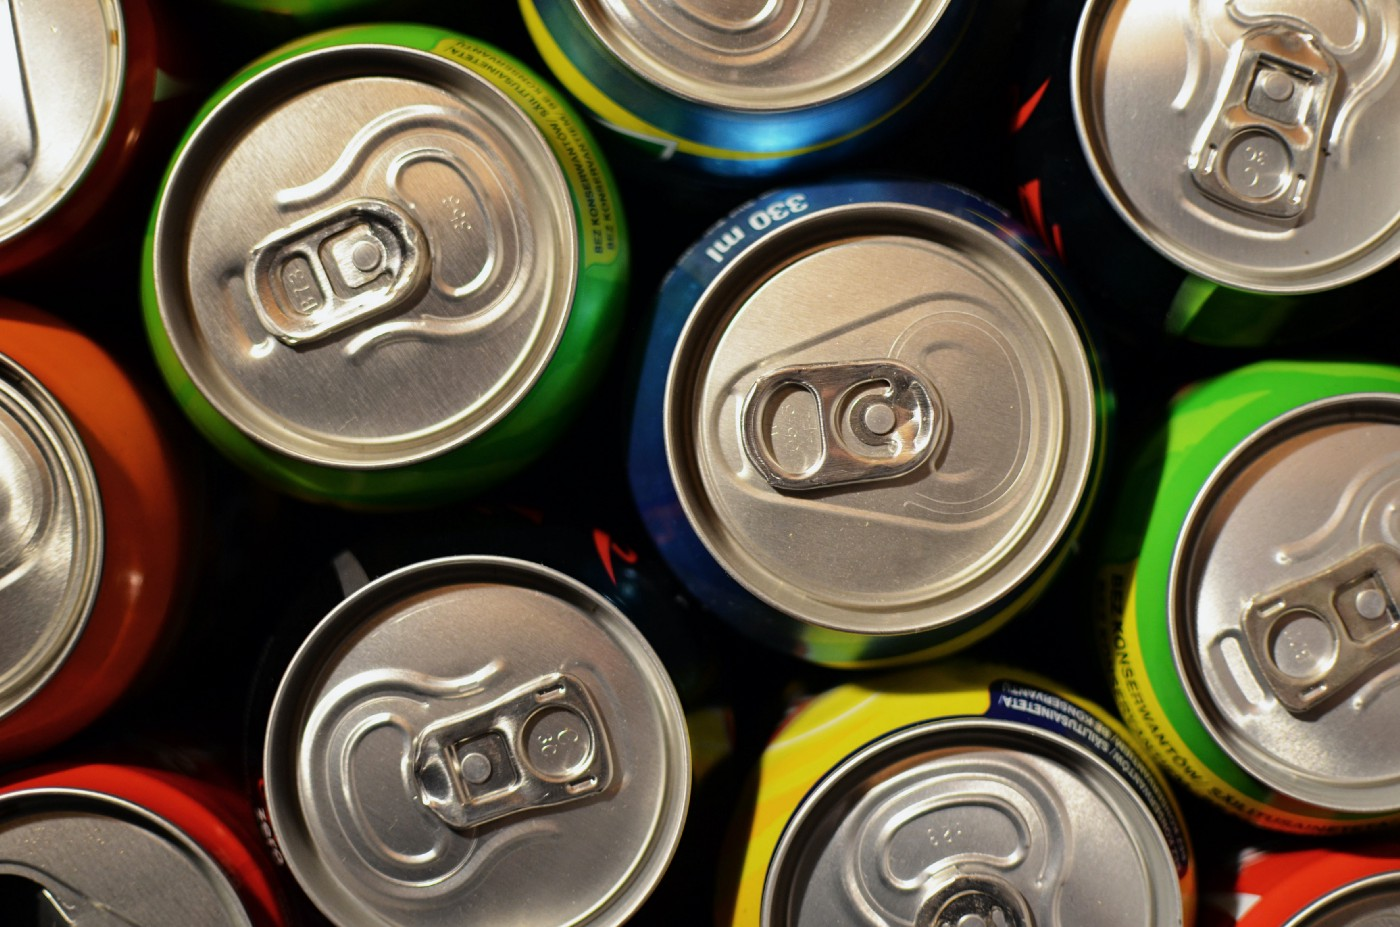 Top view of sugary beverage cans